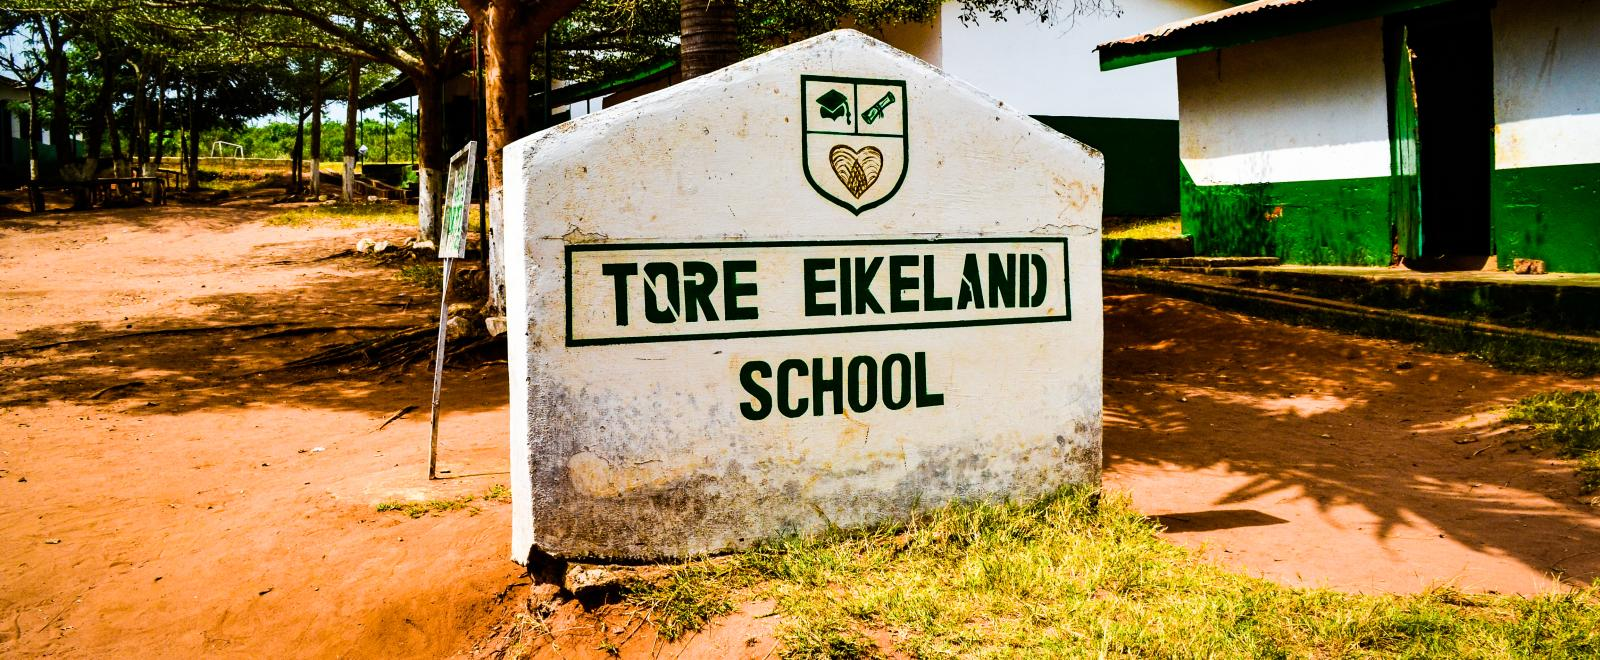 Sign standing outside Tore Eikeland School